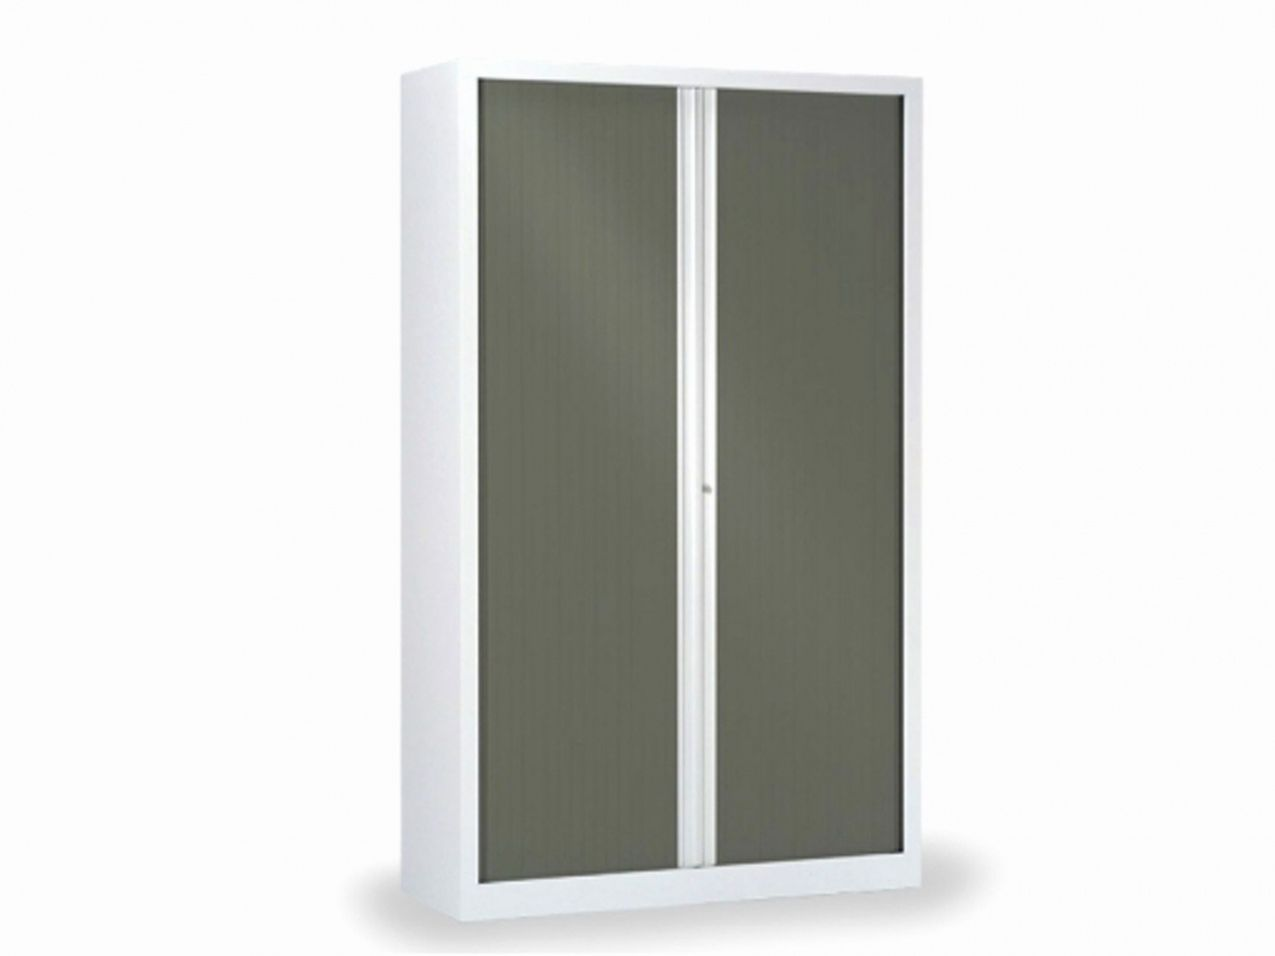 99 Armoire Vestiaire Metallique Occasion 2020 Home Decor Furniture Decor